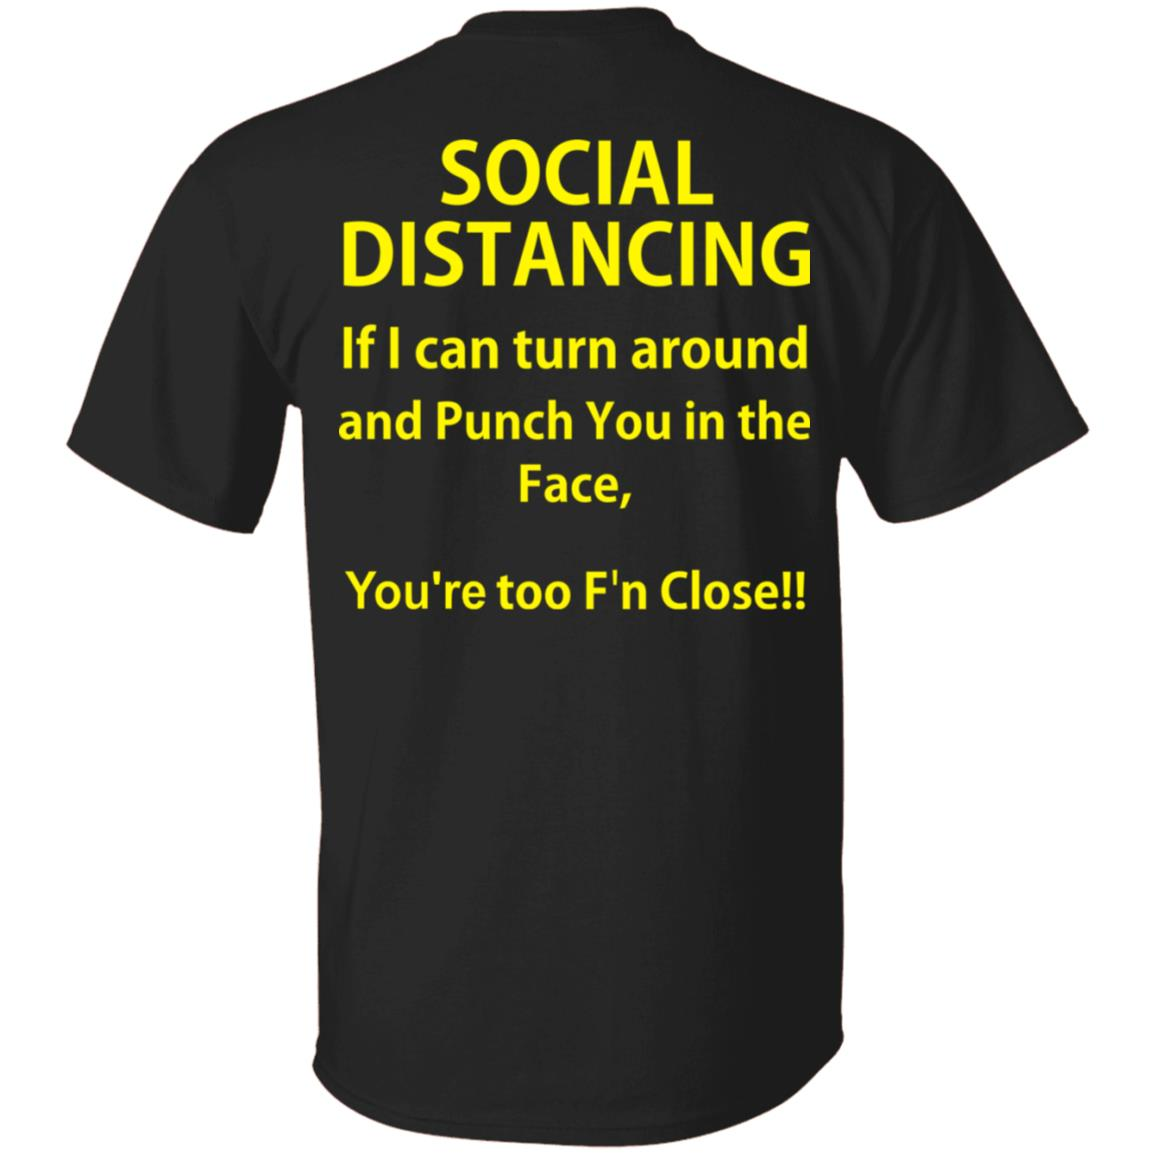 Social Distancing If I Can Turn Around And Punch You In The Face Shirt